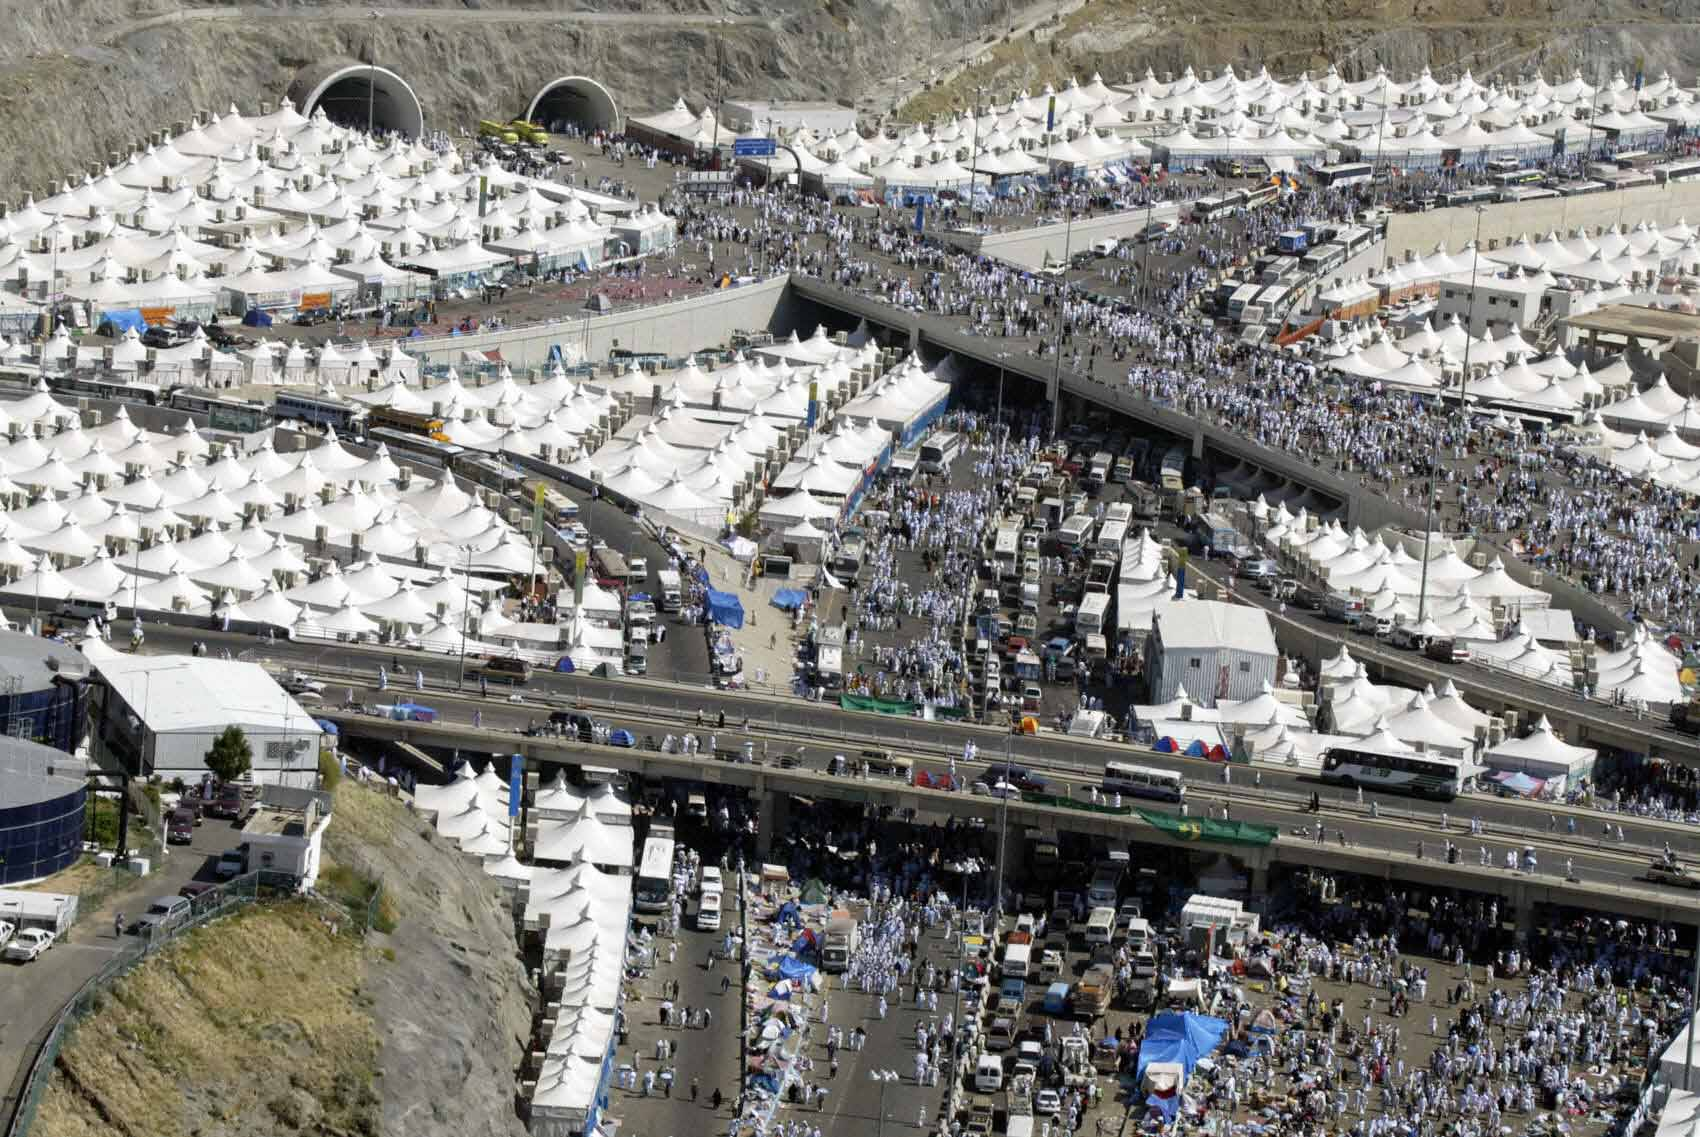 "An aerial view of Mina, near Mecca, shows scores of Muslim pilgrmis walking towards the spot where they stone the devil, one of the rituals of the last stage of the annual hajj pilgrimage, on second day of Eid Al-Adha, 02 February 2004. Saudi Arabia's King Fahd has ordered ""overall plans"" to be drawn up to modernise the holy cities of Mecca and Medina after 251 pilgrims died in a stampede, according to the official Saudi media. AFP PHOTO/Awad AWAD"